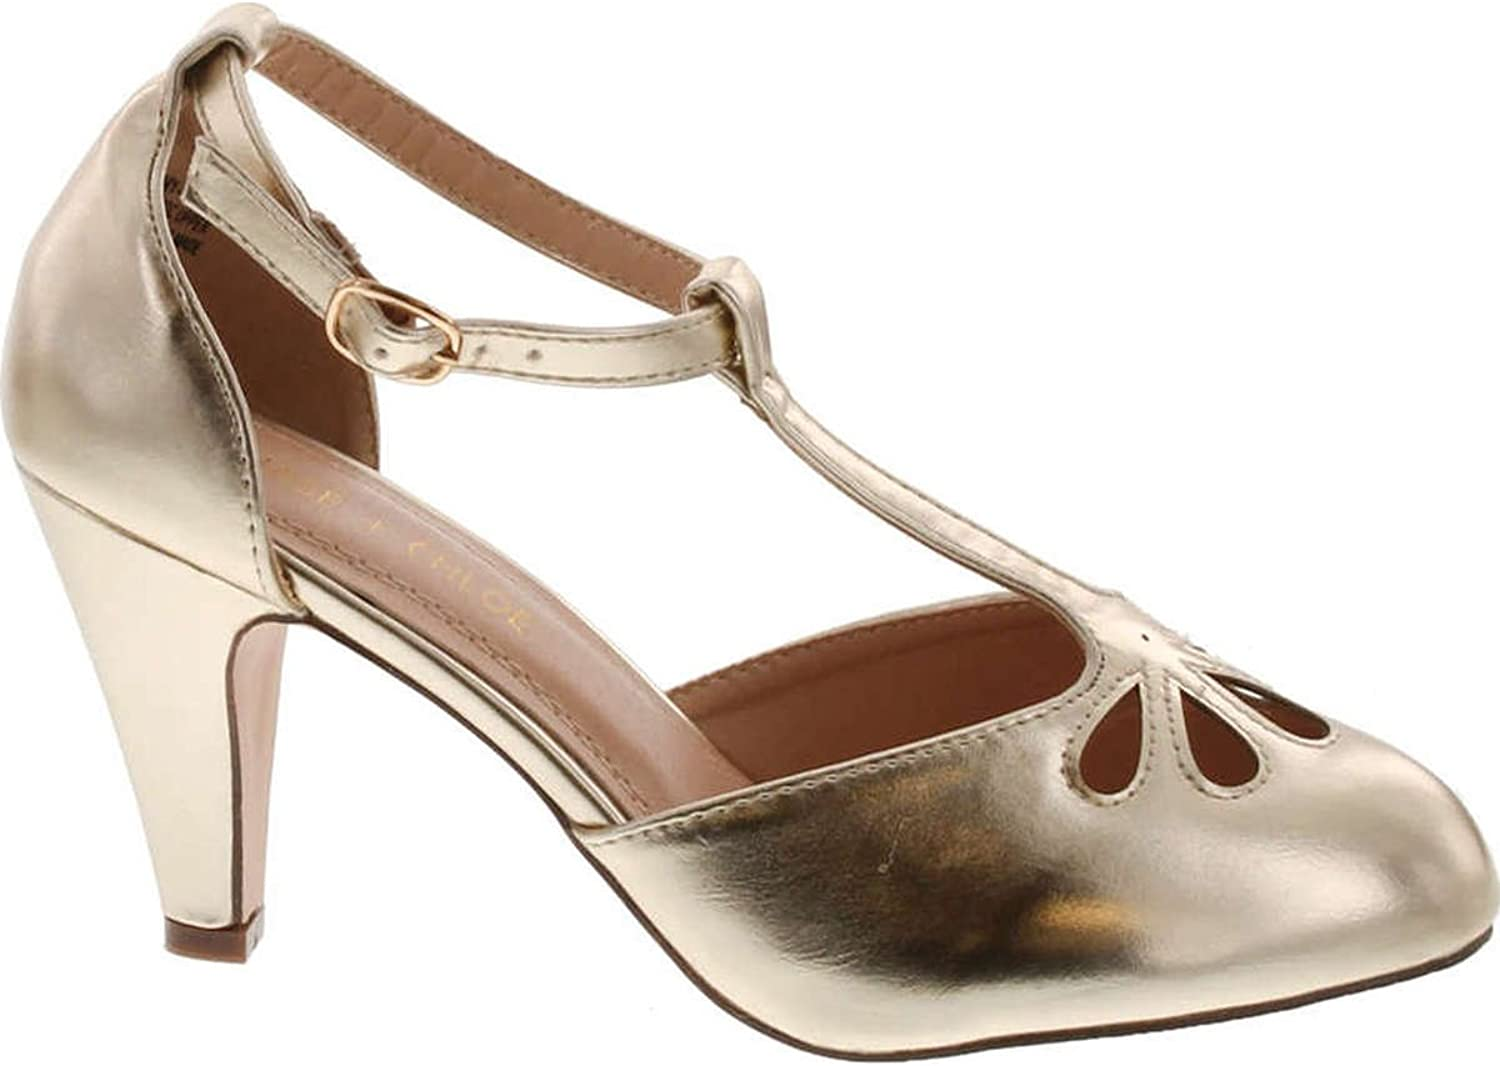 Chase & Chloe New Kimmy-36 Women's Teardrop Cut Out T-Strap Mid Heel Dress Pumps